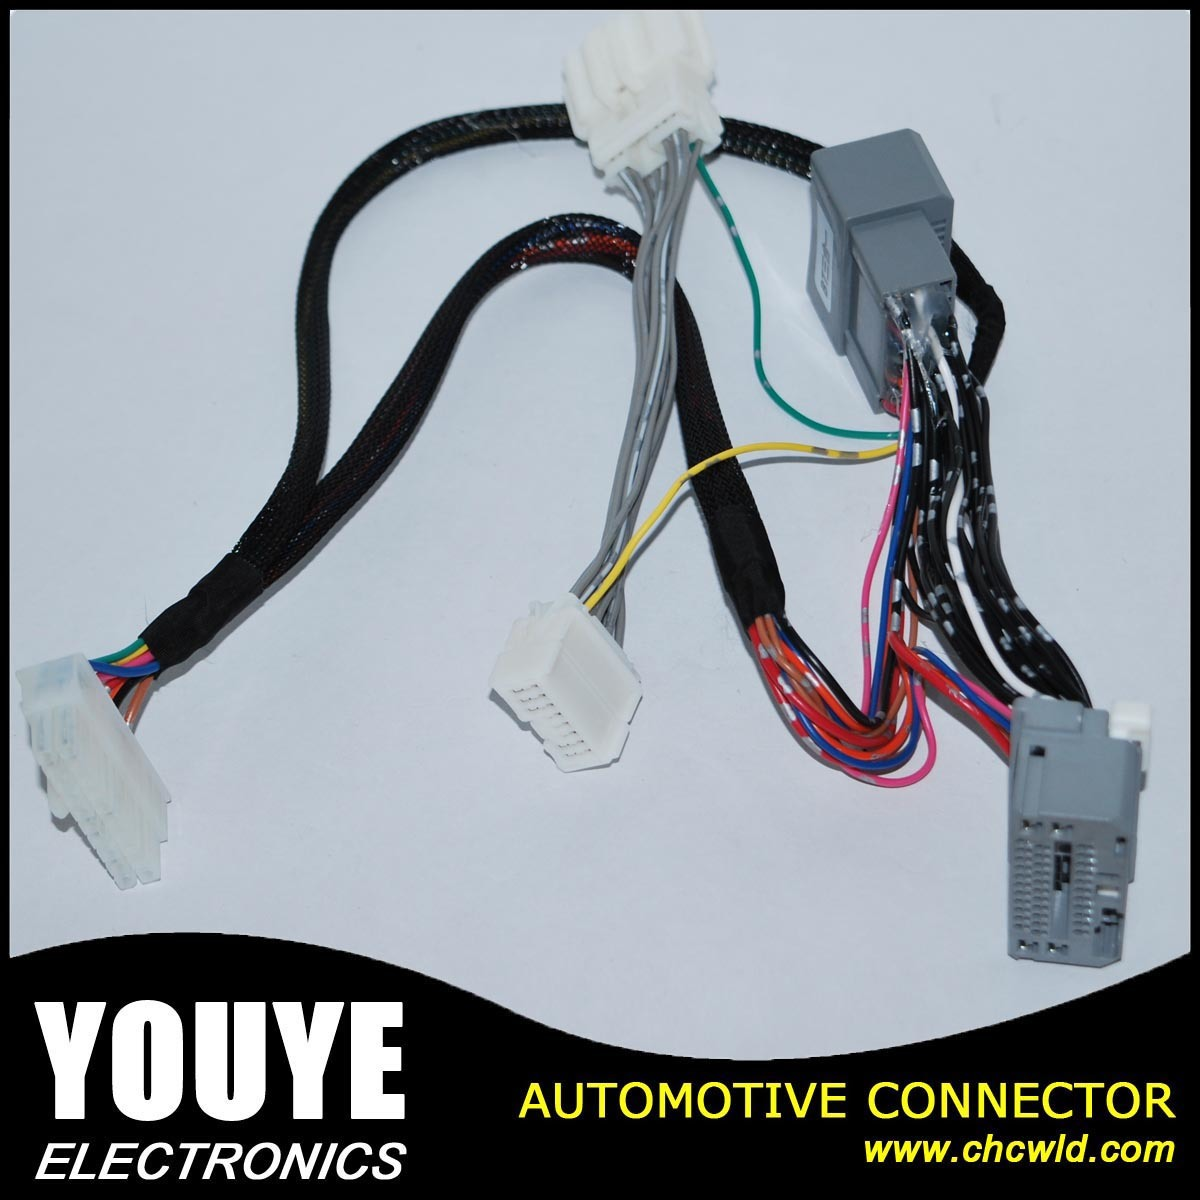 China Oem Factory Auto Wiring Harness For Honda Wire Automotive Electrical Cable